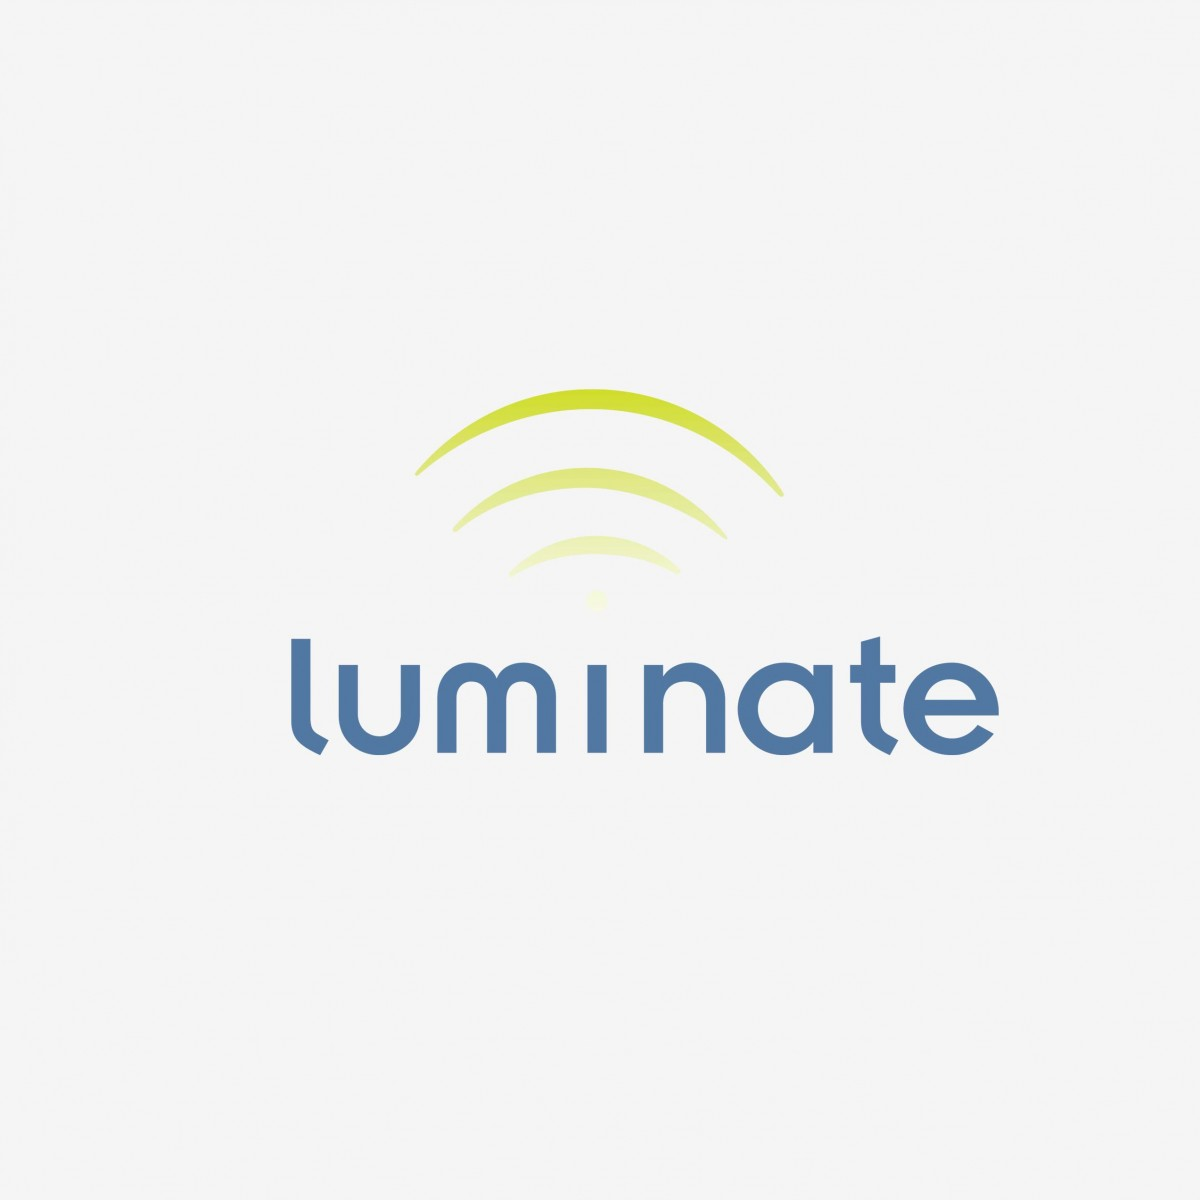 Luminate corporate identity